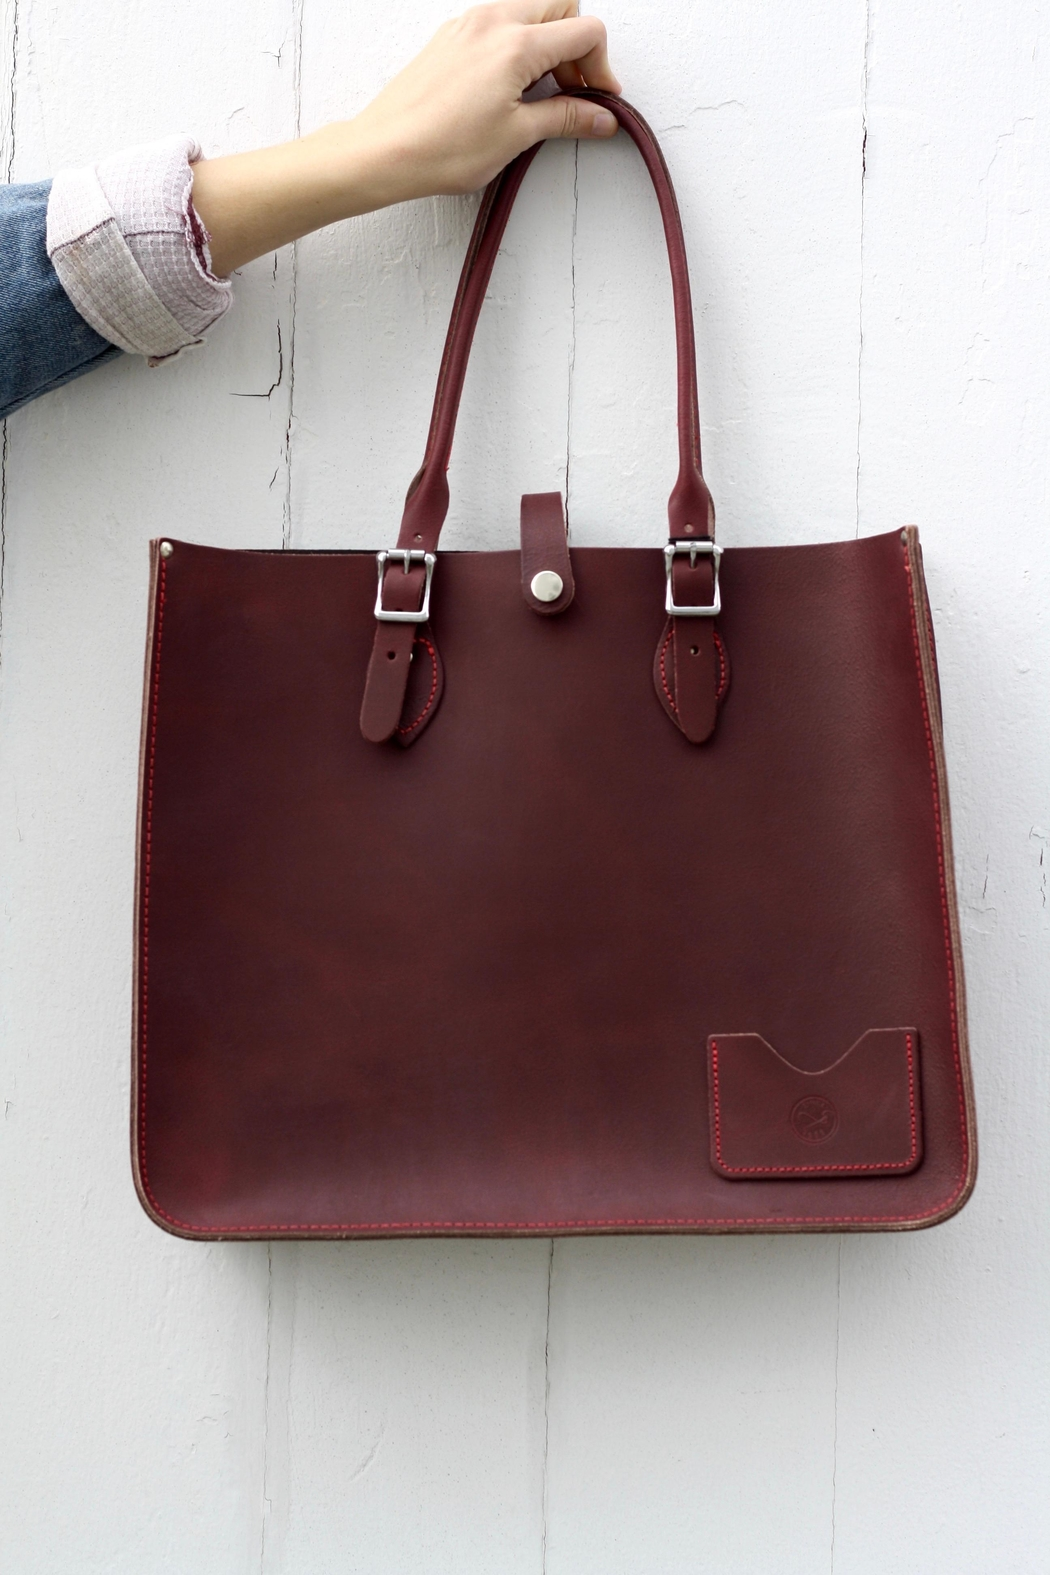 fd00fc0c1e94 The Leather Satchel Company Leather Tote Bag from Wallingford by The ...